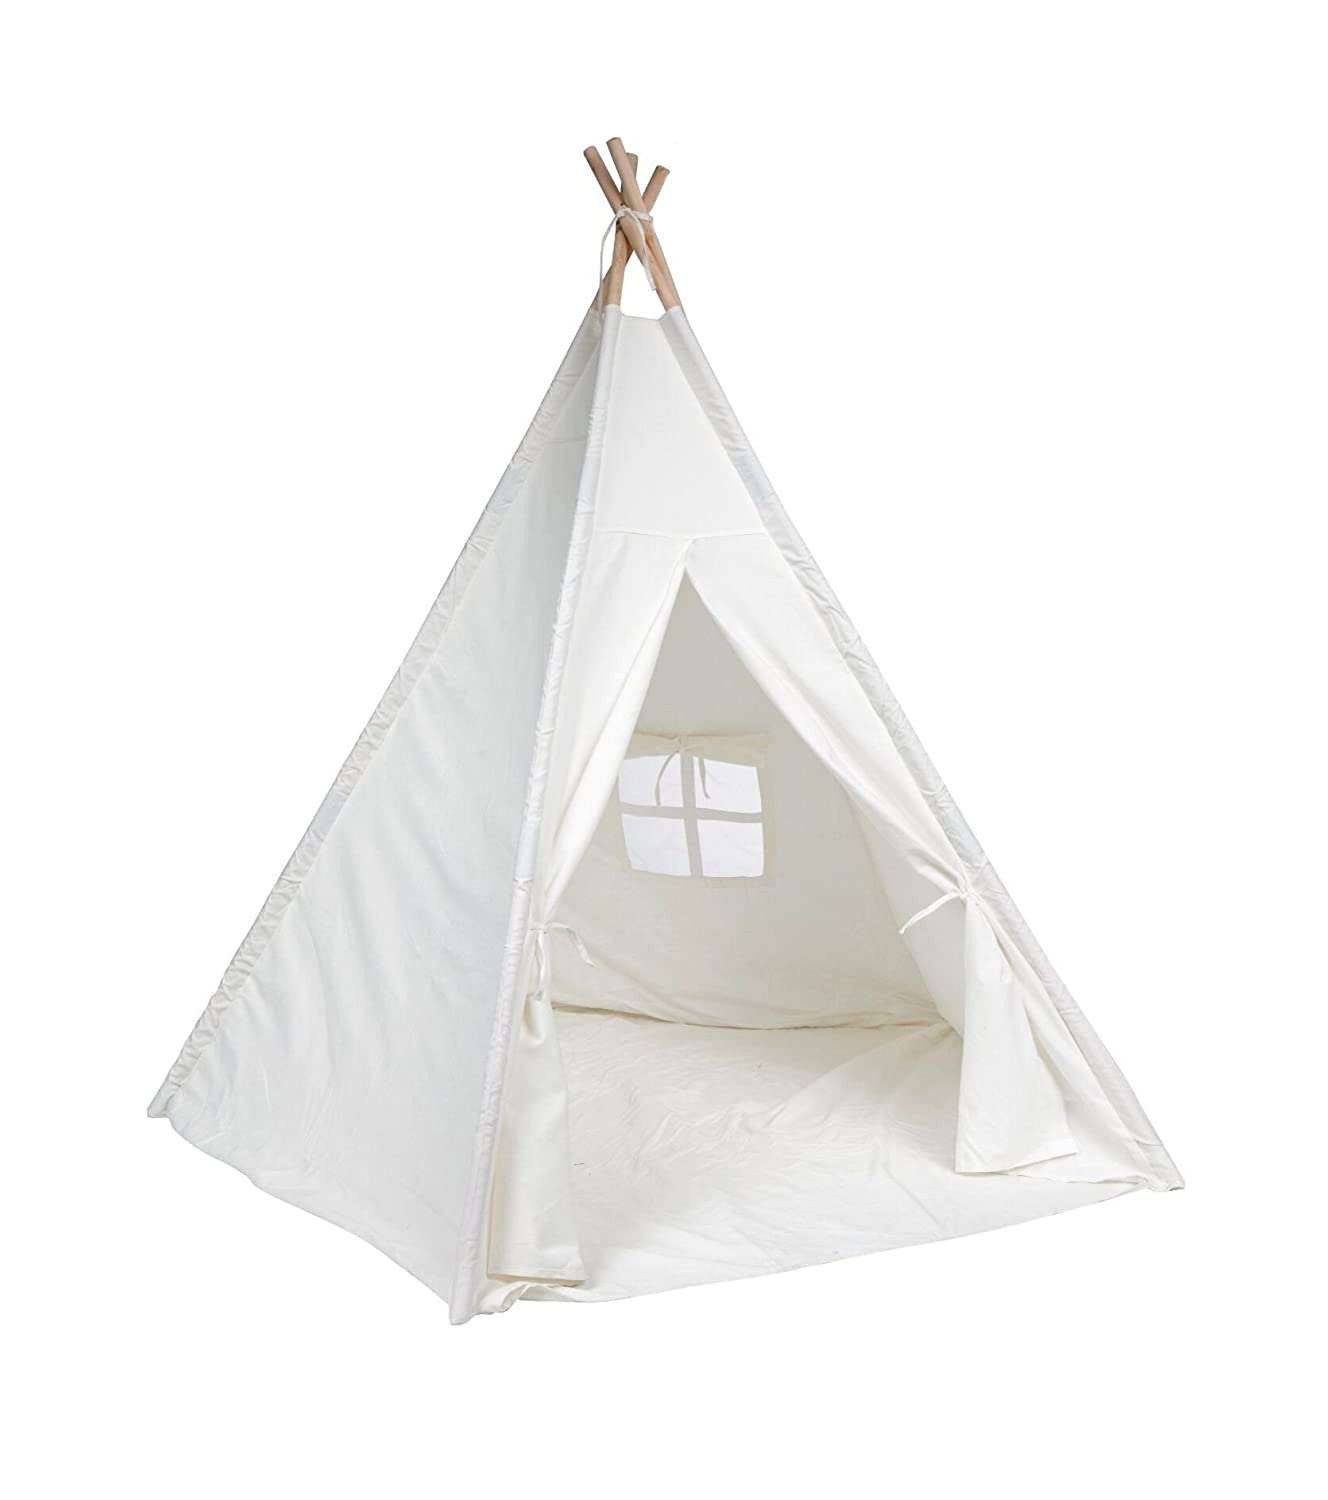 DeceStar Teepee Tent for Kids Natural Cotton Canvas Play Tent